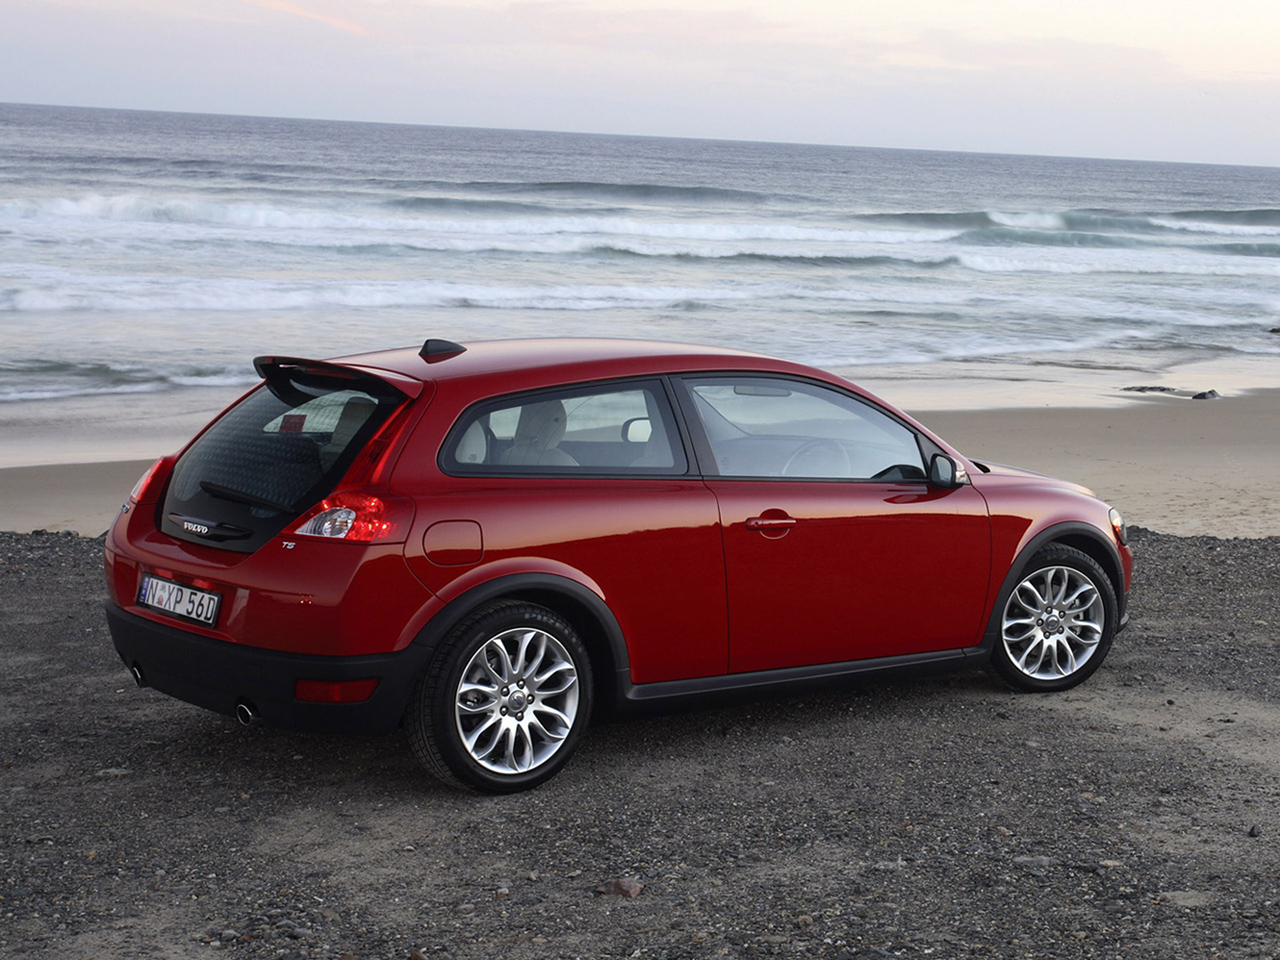 2006 Volvo C30 Coupe 3-door